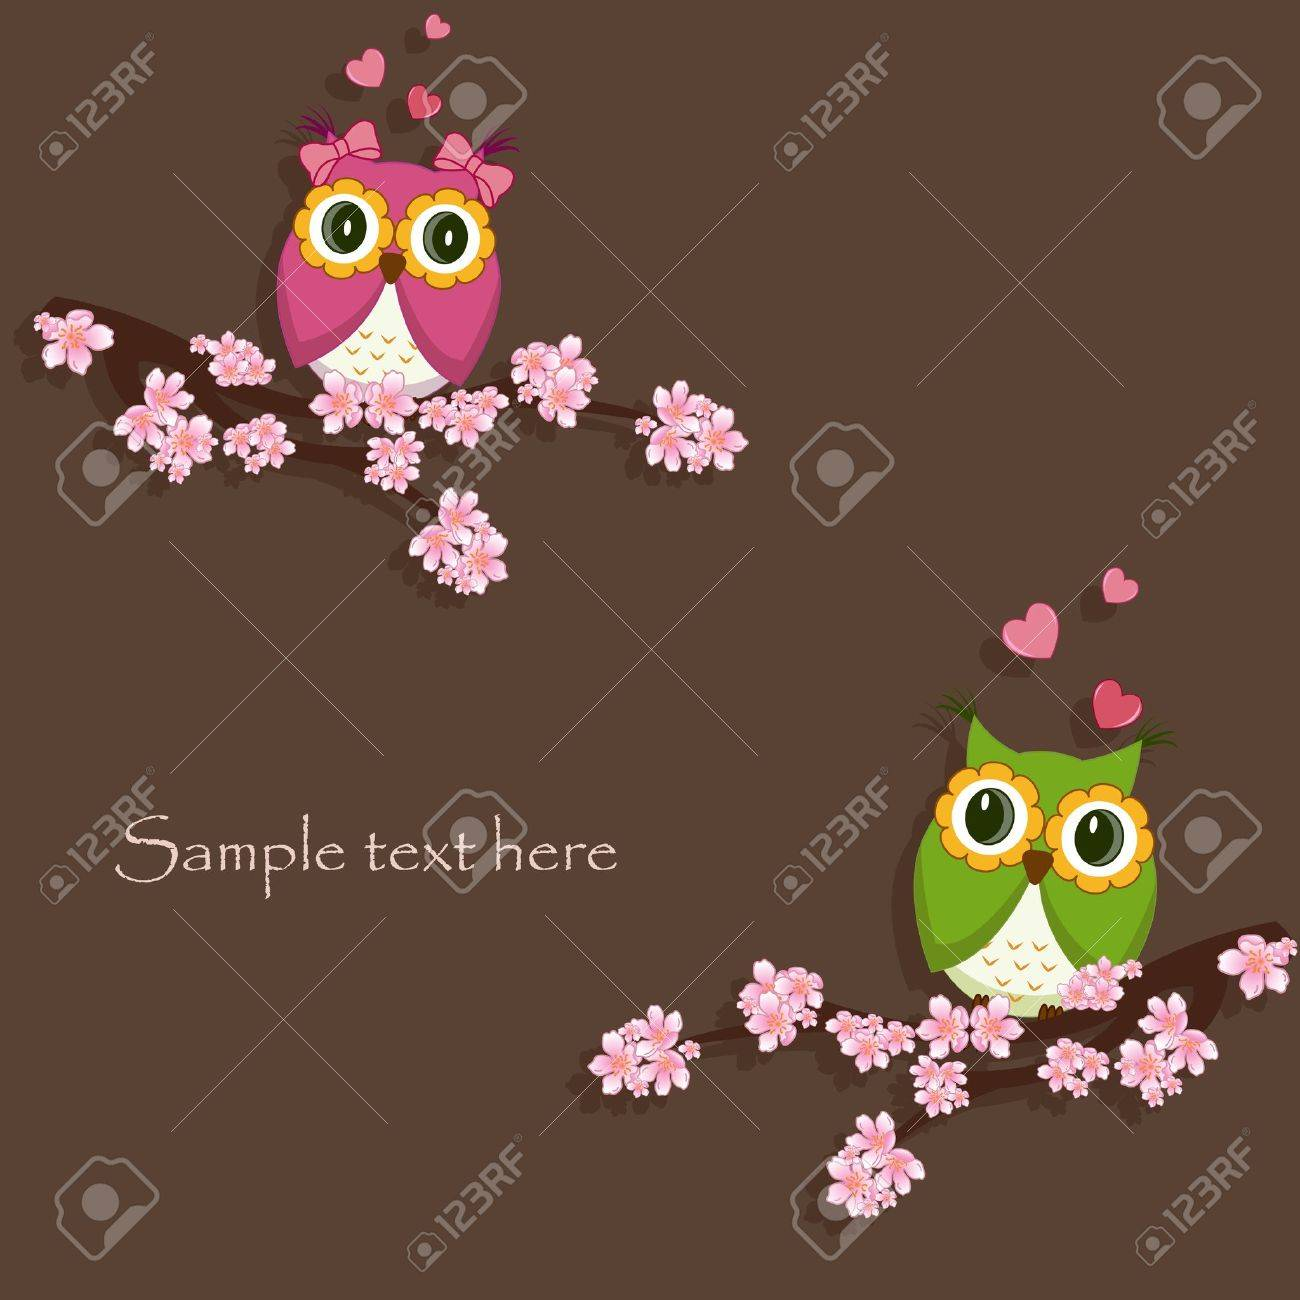 Two funny, love the owl sitting on a flowering branch Stock Vector - 13514279